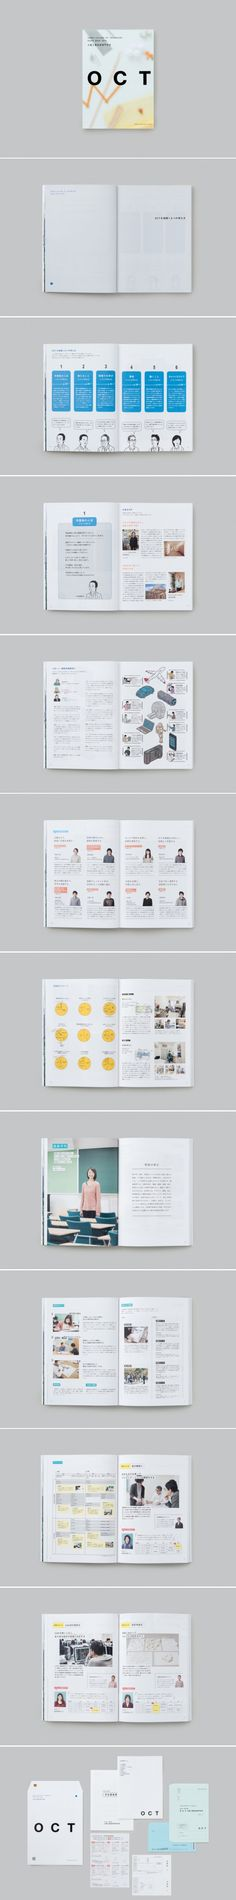 OSAKA COLLEGE OF TECHNOLOGY GUIDE BOOK 2014 : UMA / design farm